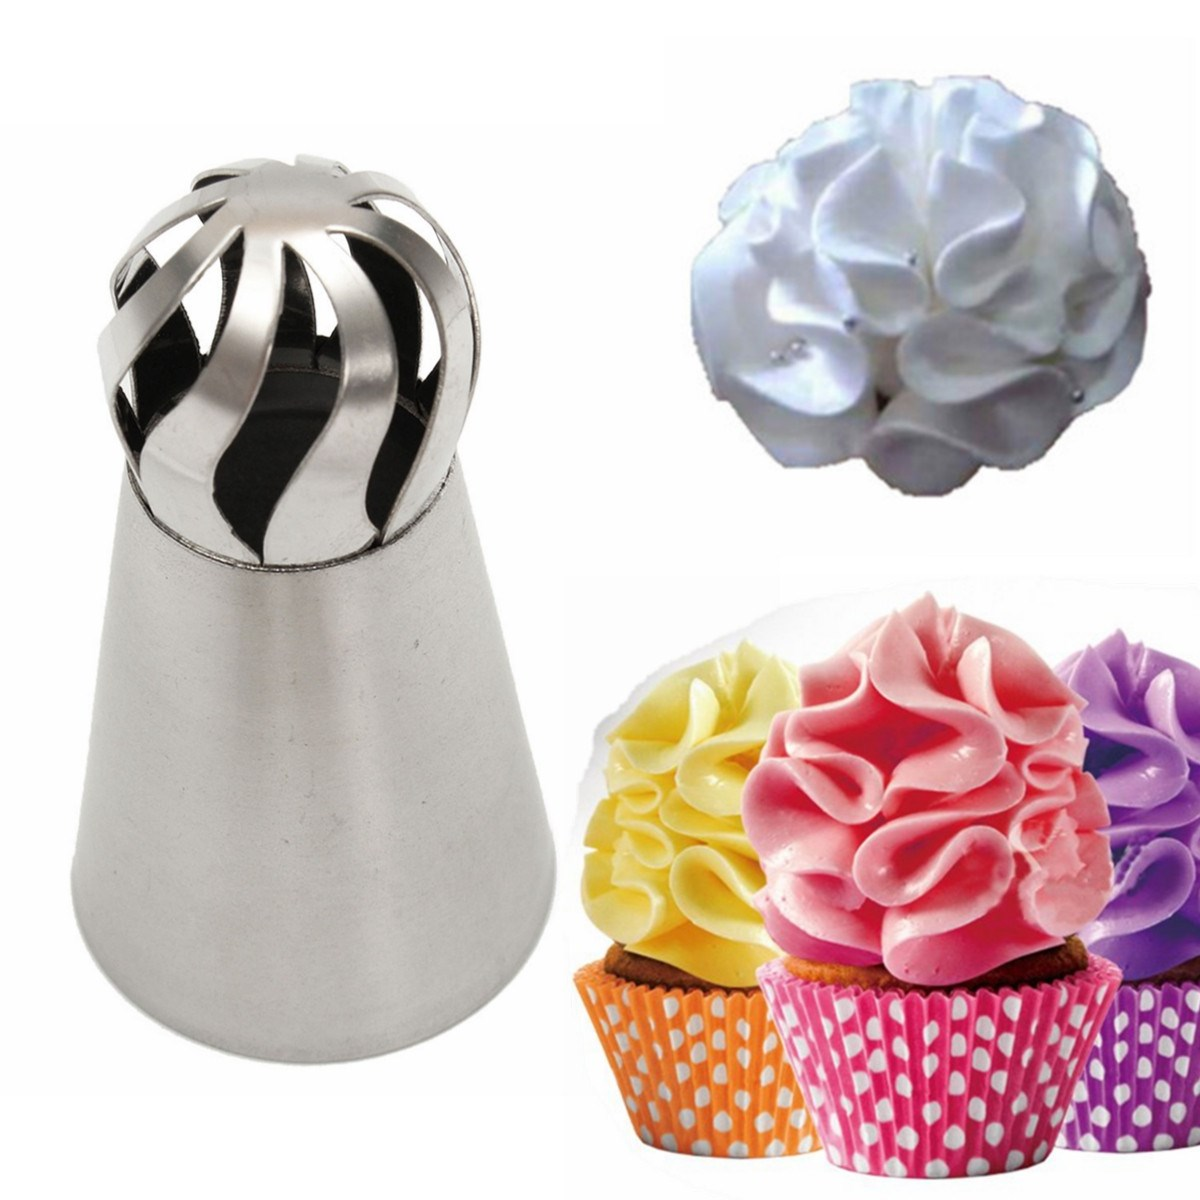 Sphere Ball Shape Stainless Steel Nozzle Cake Sugarcraft